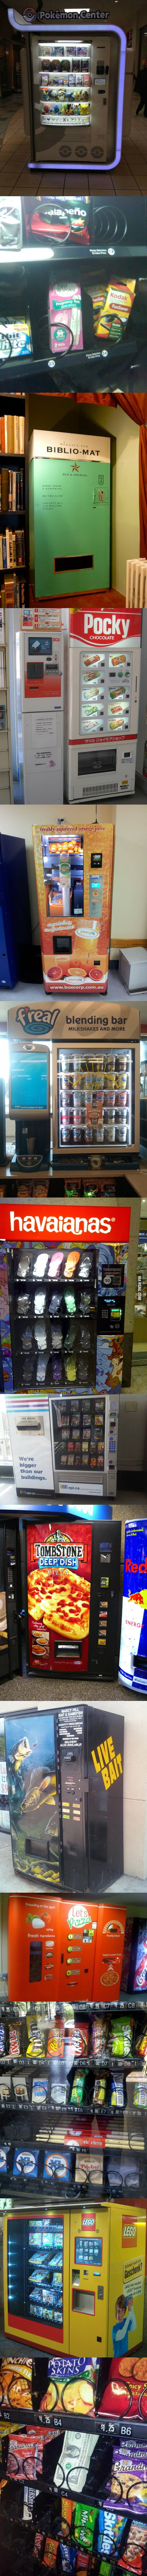 There's always a vending machine for that